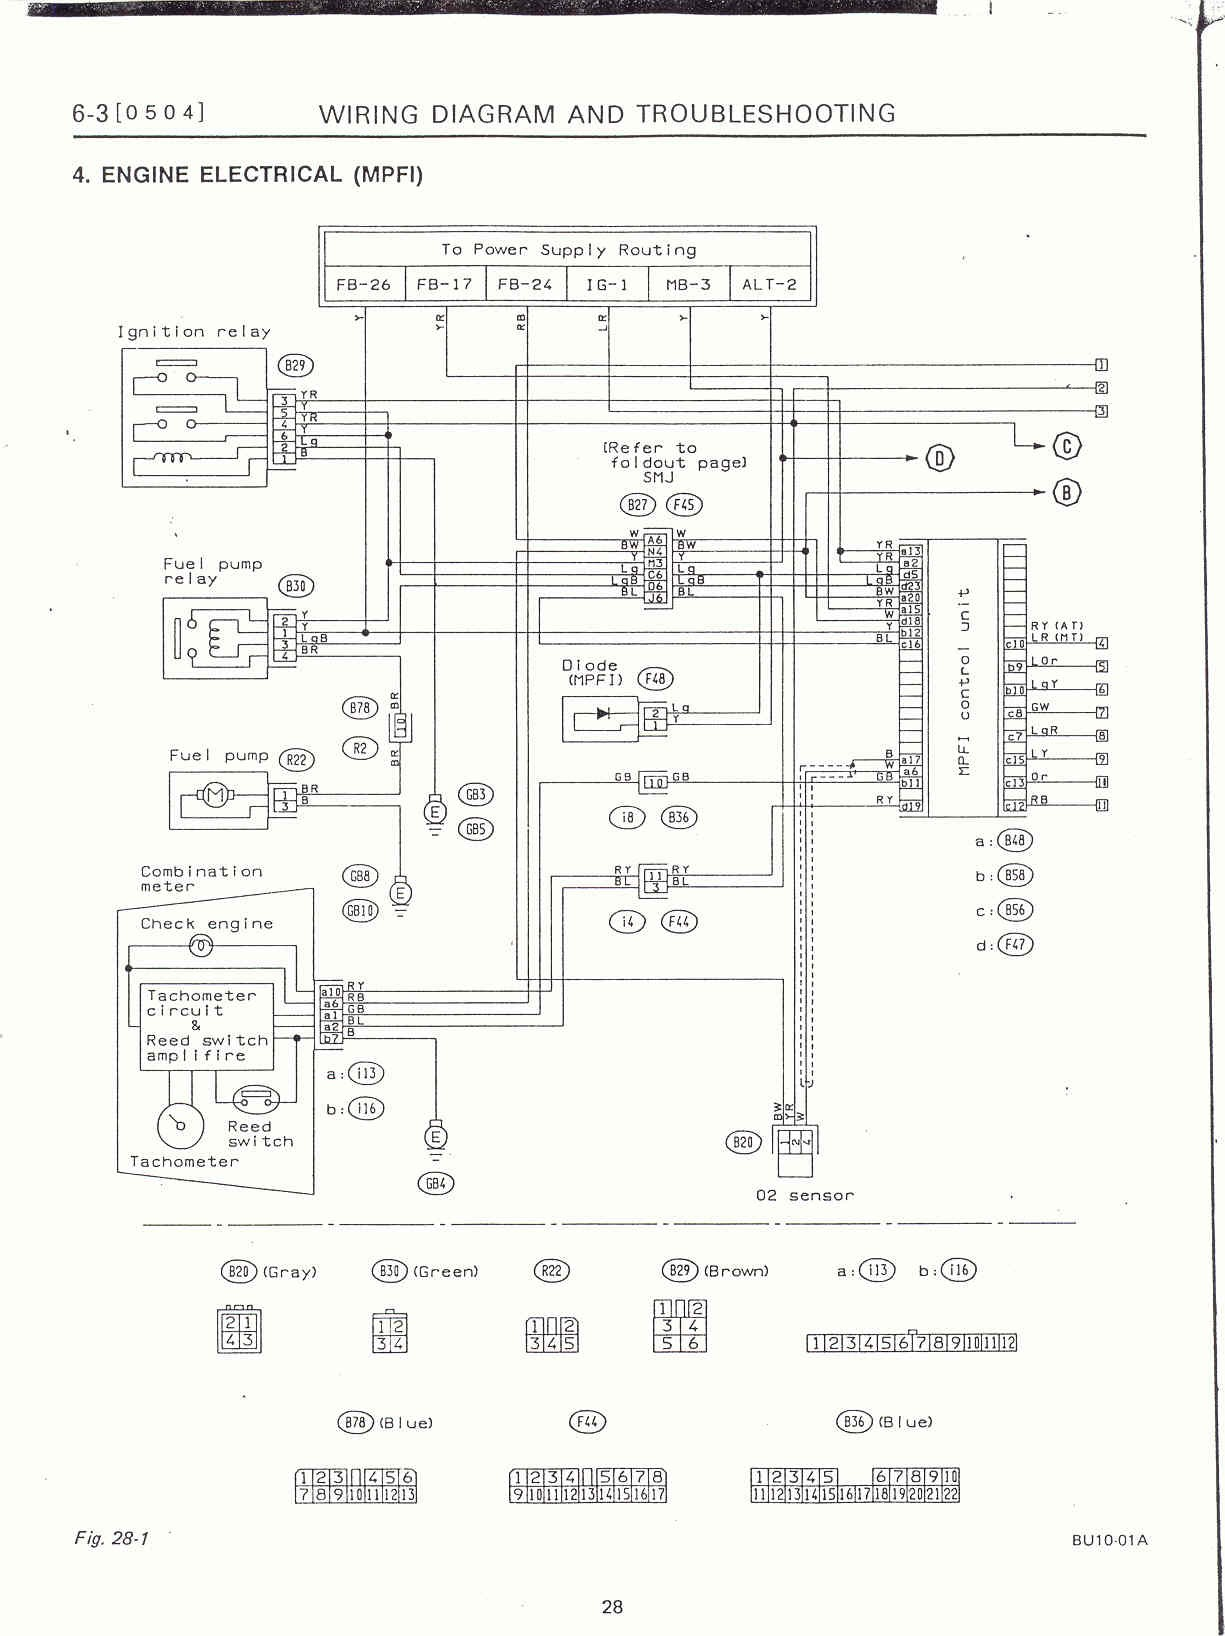 1995 subaru legacy engine diagram 92 subaru legacy engine diagram